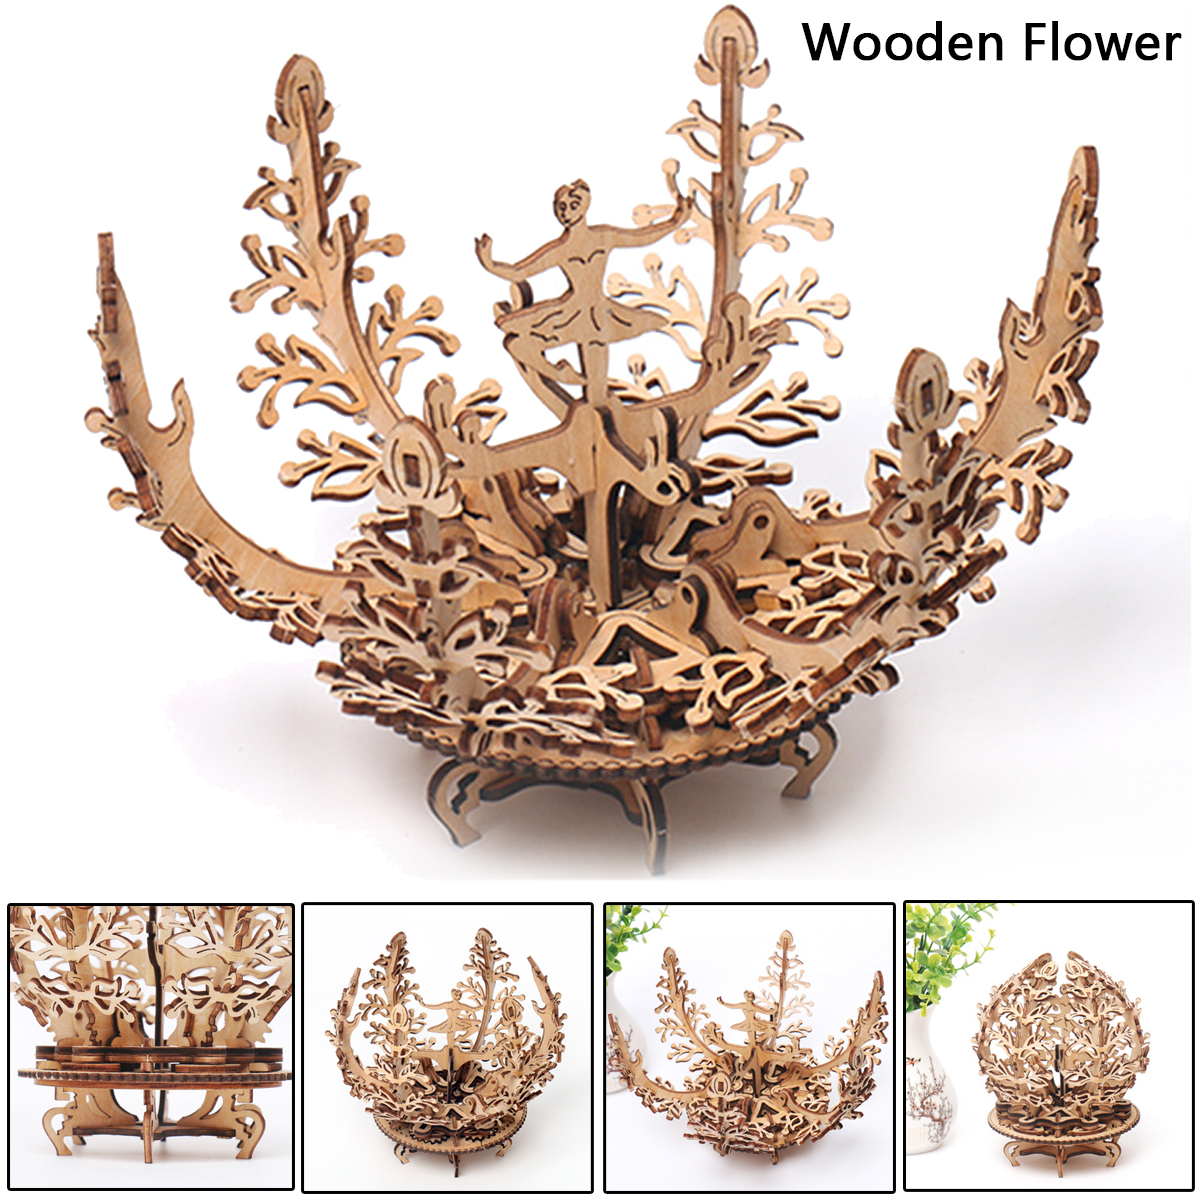 DIY 3D Wooden Puzzles Wooden Folwer Jigsaw Set for Adults Home Ornament